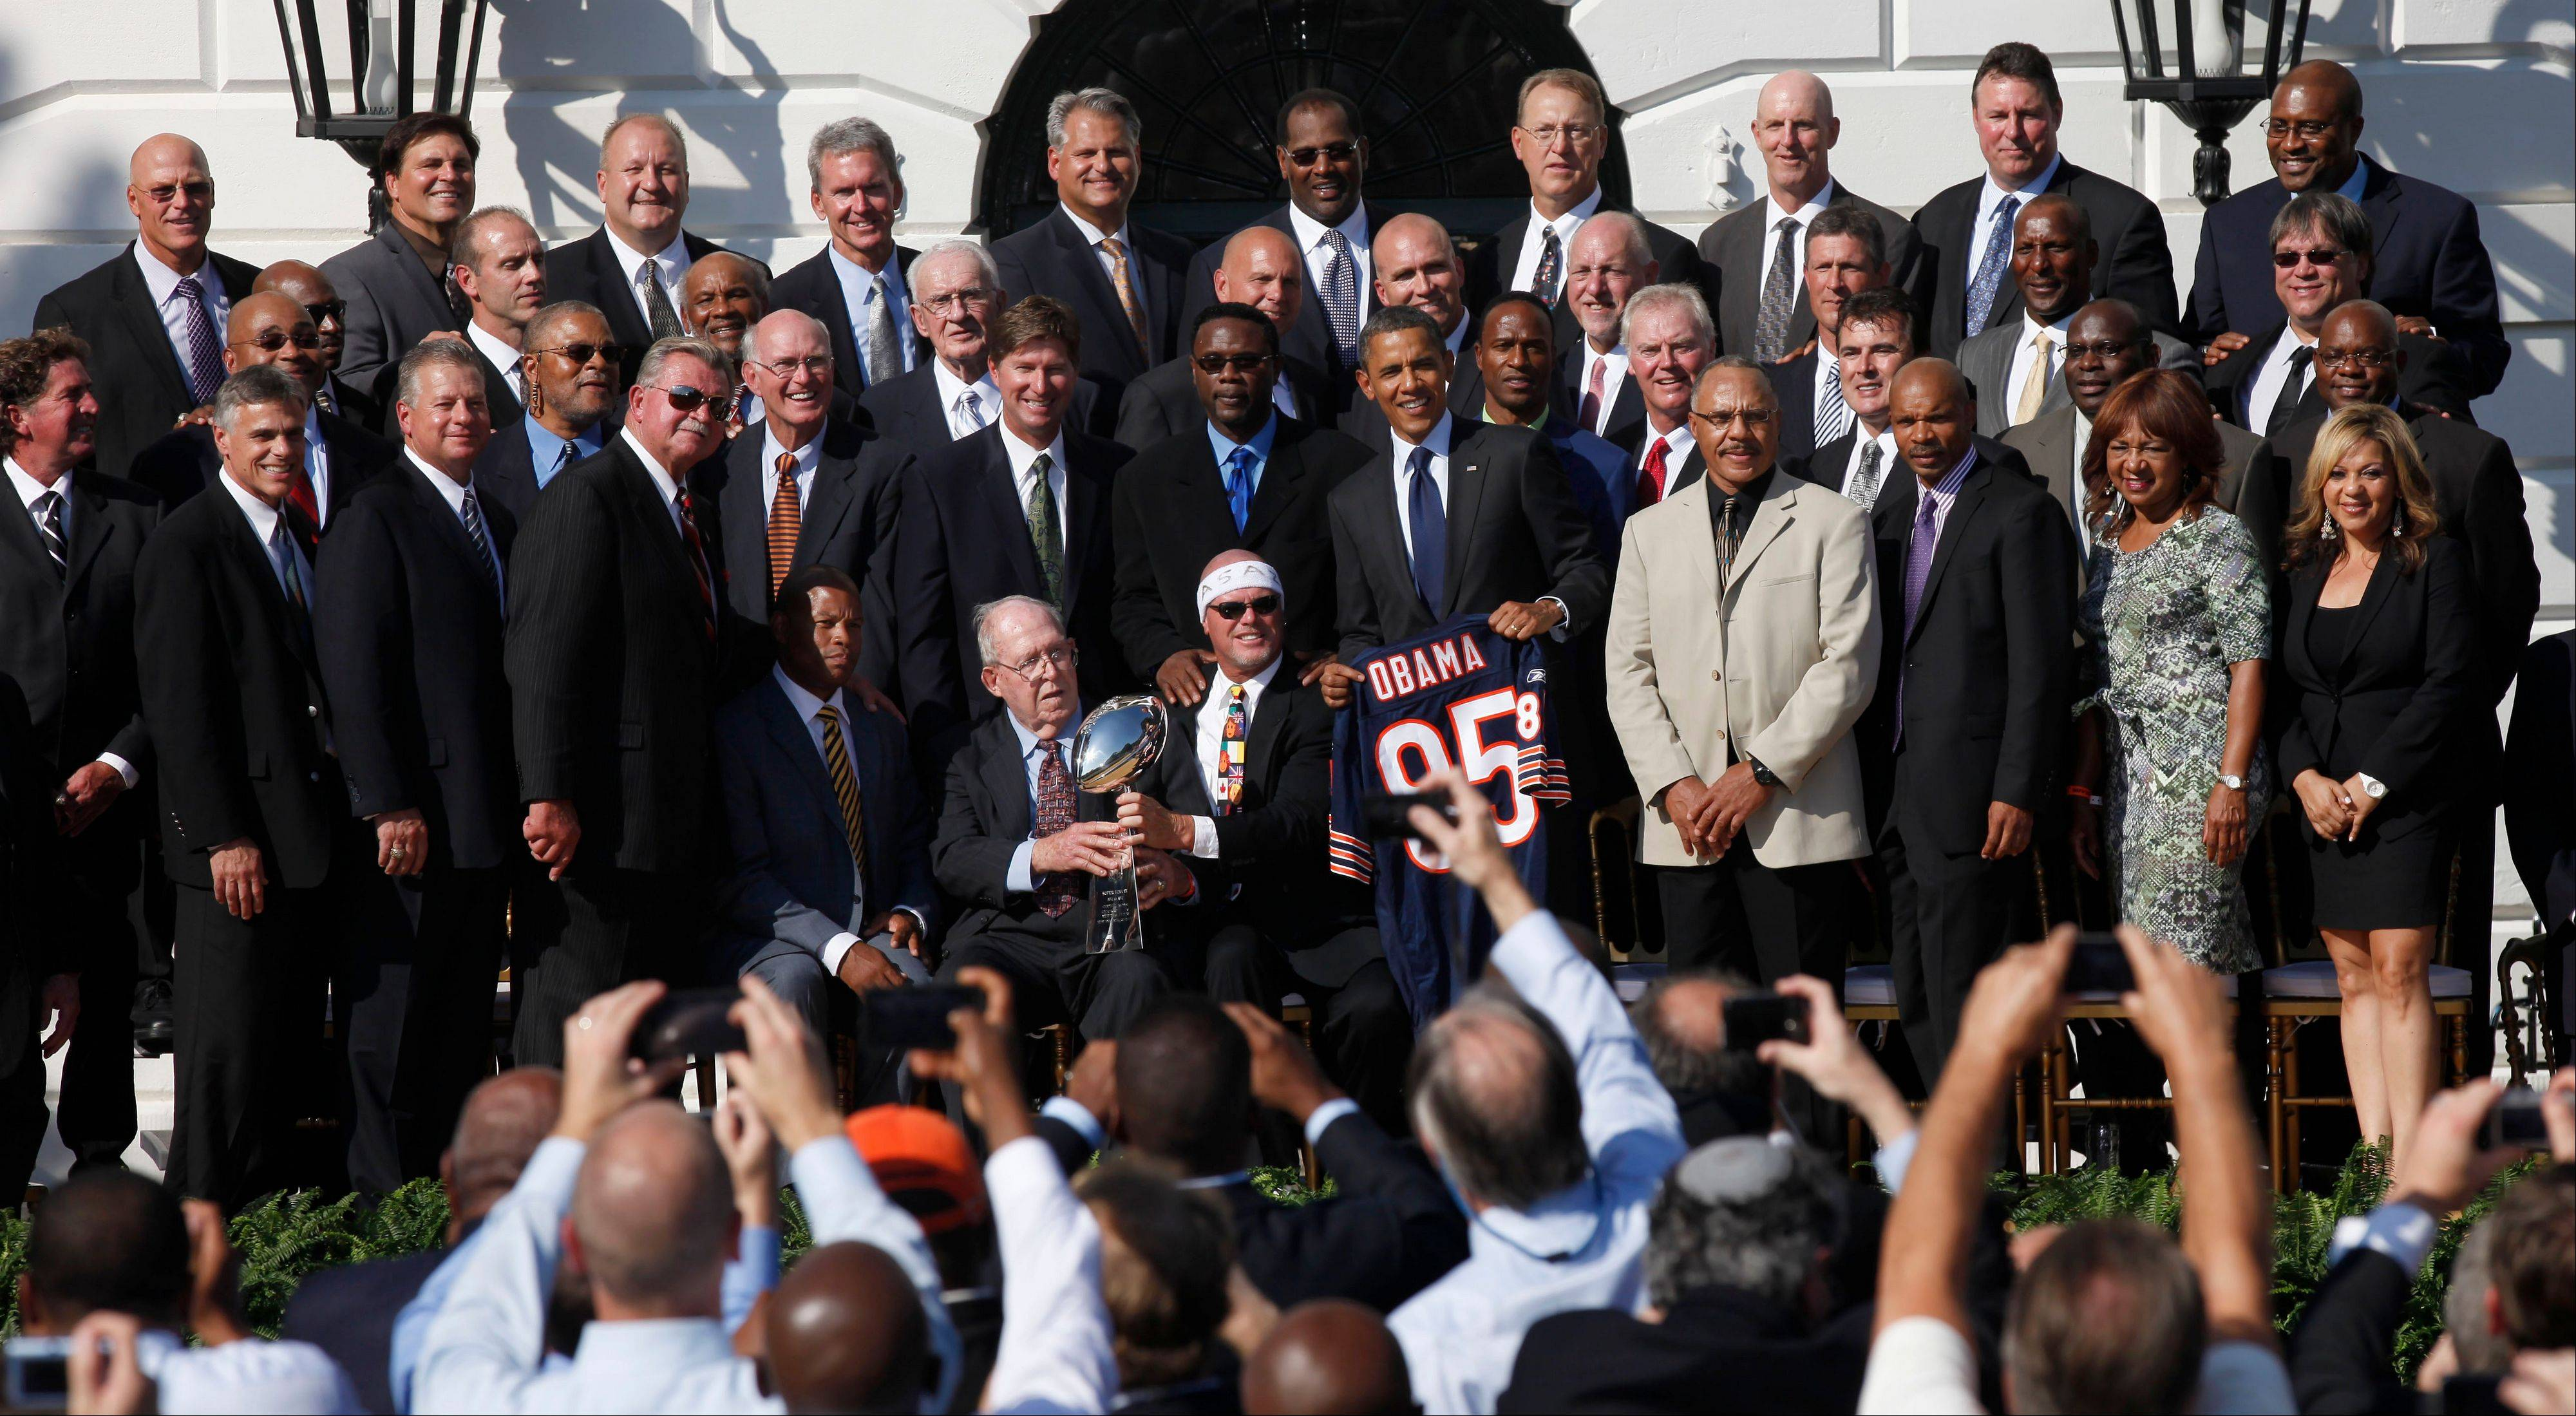 ASSOCIATED PRESSPresident Barack Obama, center, holds up a team jersey as he stands with the 1985 Super Bowl XX Champions Chicago Bears football team during a ceremony on the South Lawn of the White House.